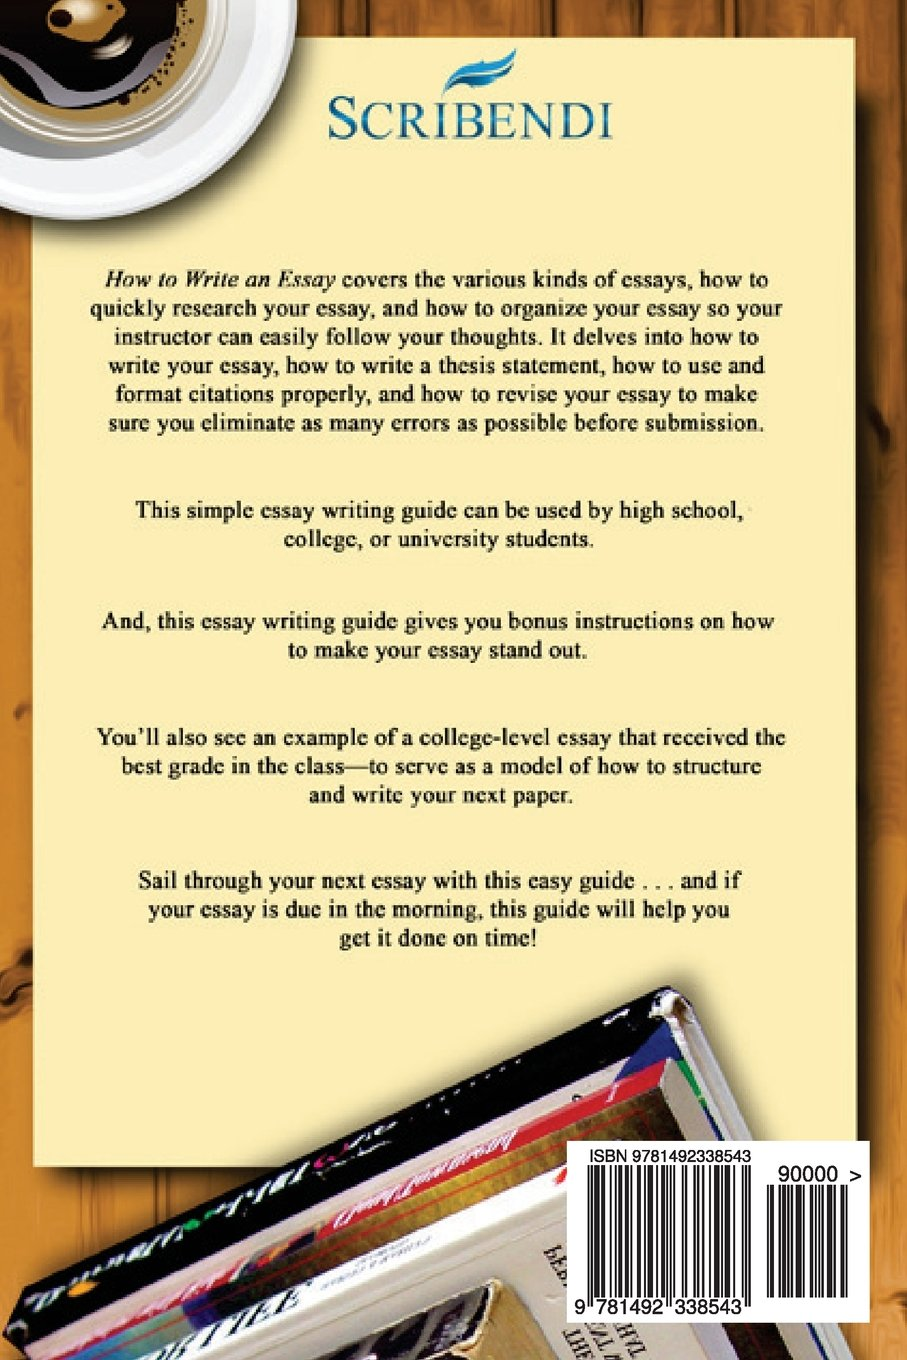 how to write an essay in five easy steps scribendi  how to write an essay in five easy steps scribendi 9781492338543 com books